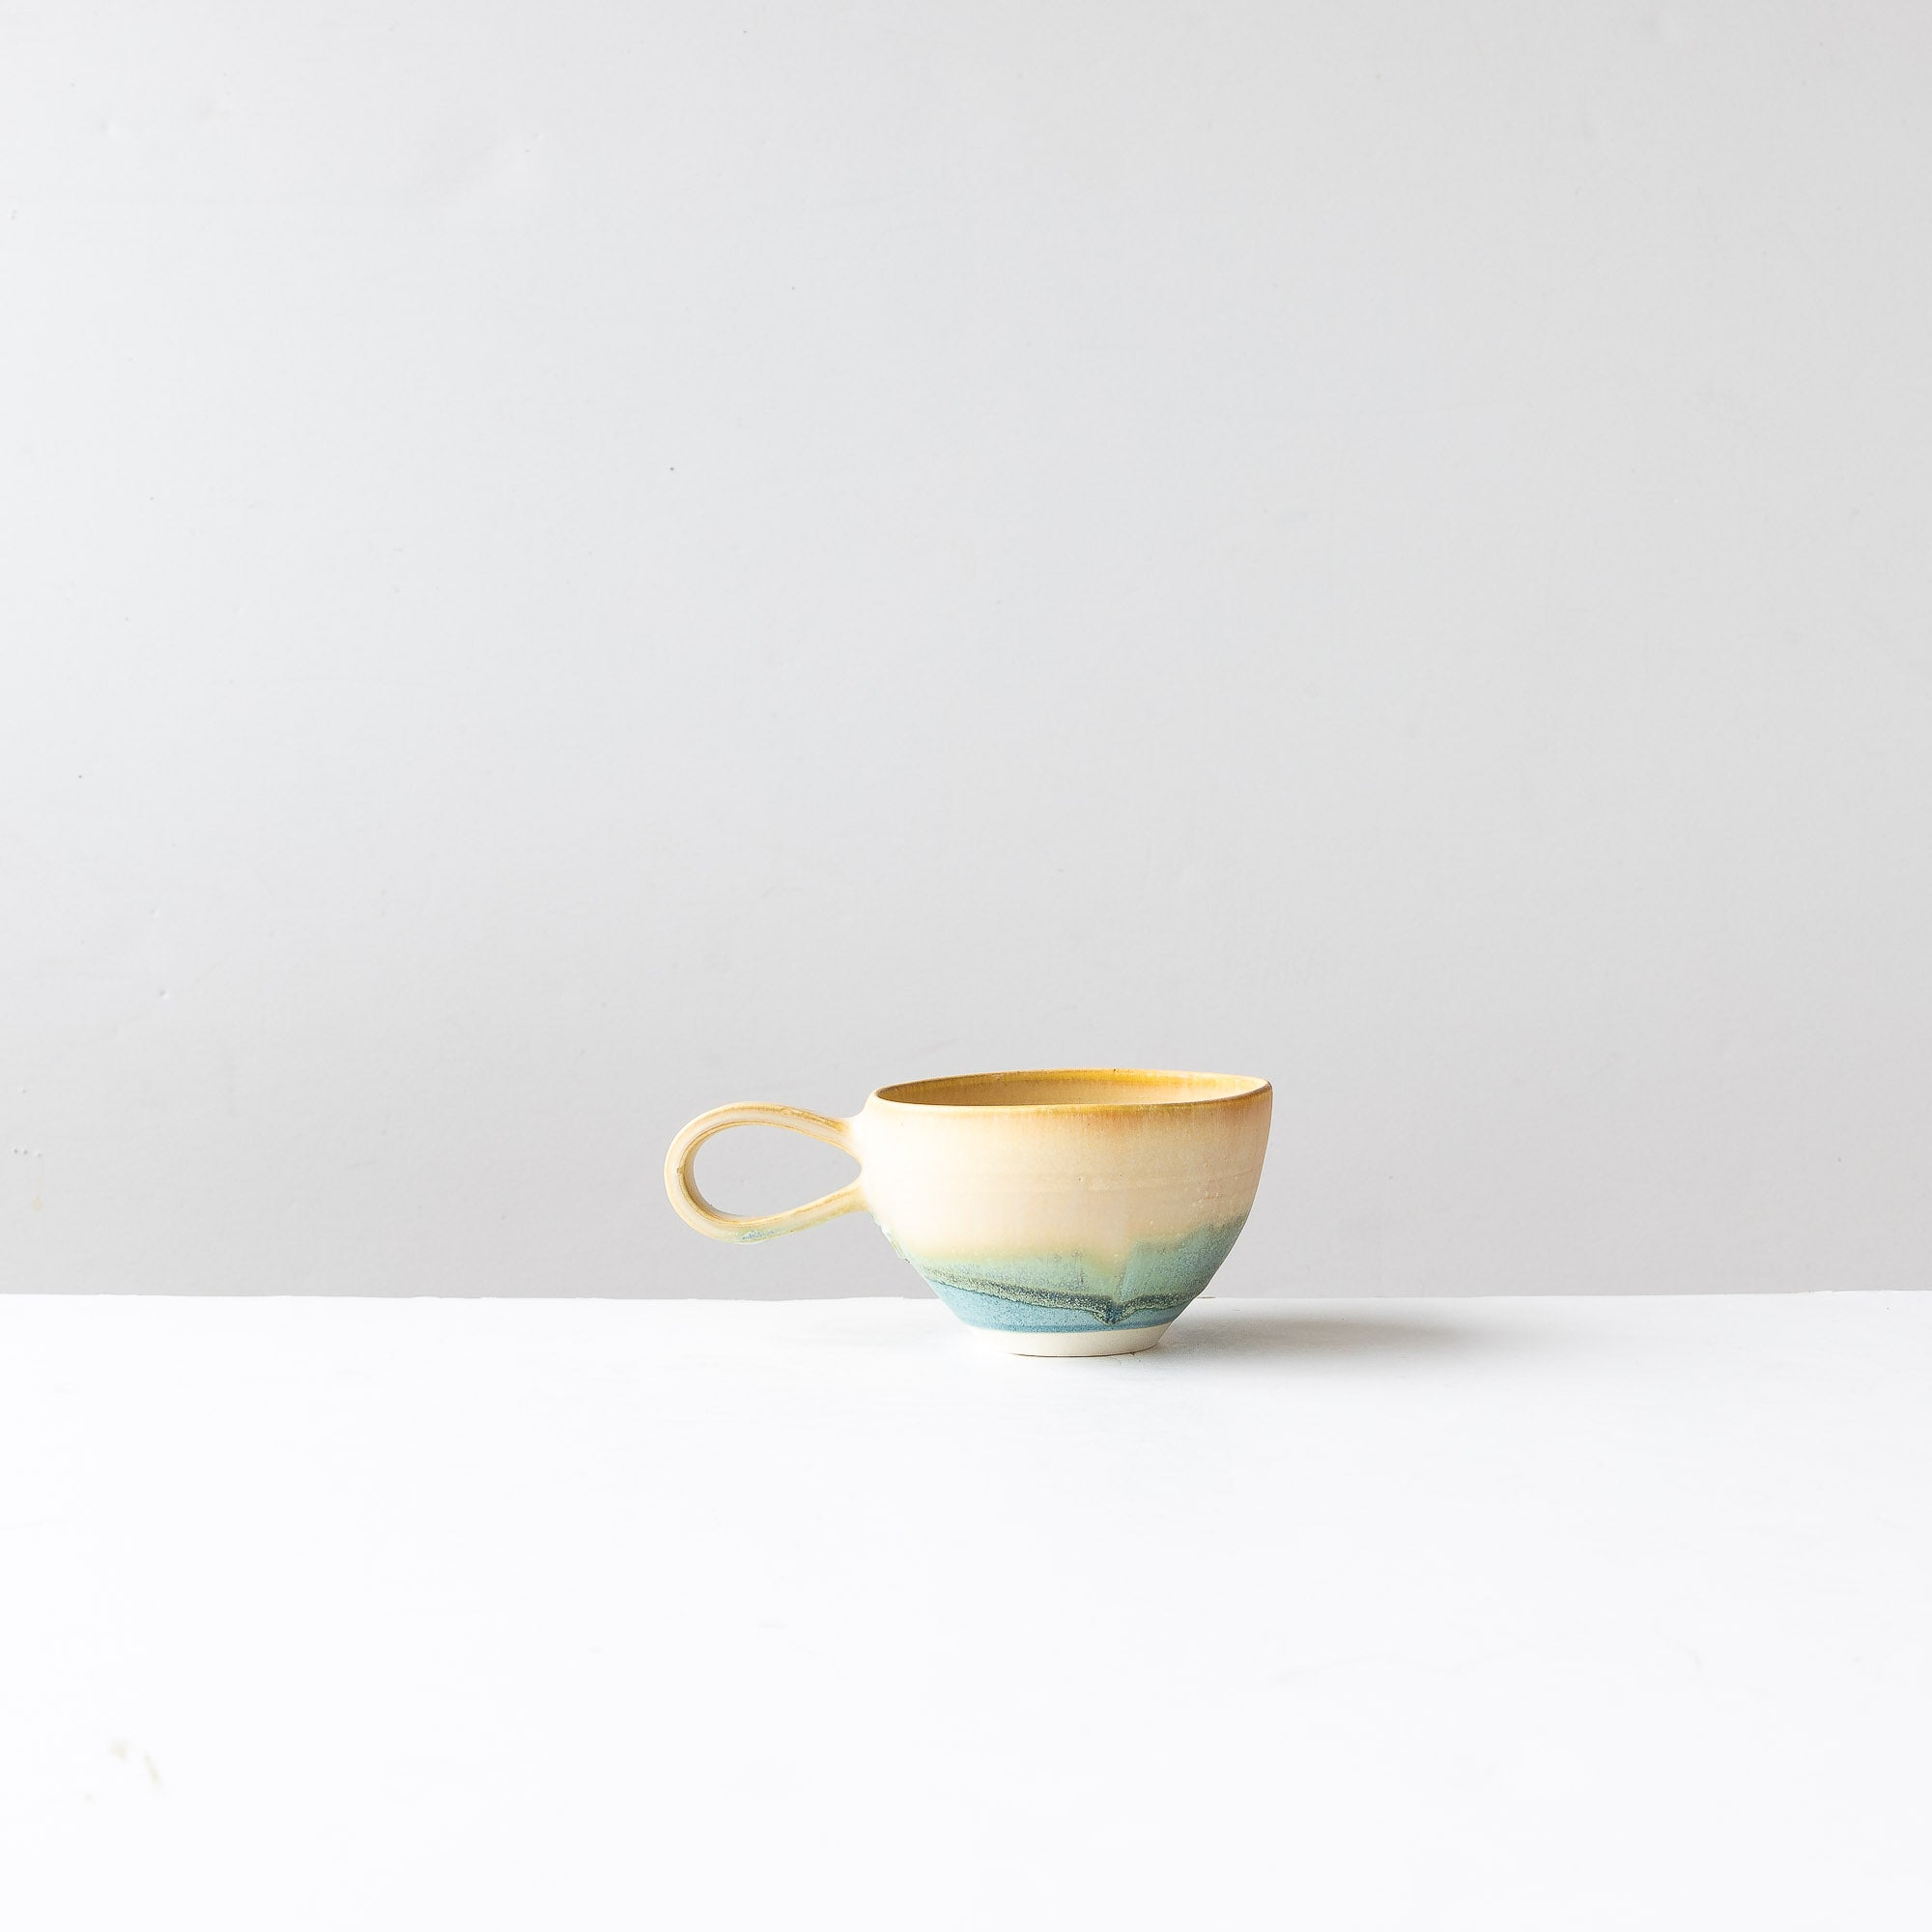 Handmade Stoneware Cup - Sea, Sky, Sand - Sold by Chic & Basta